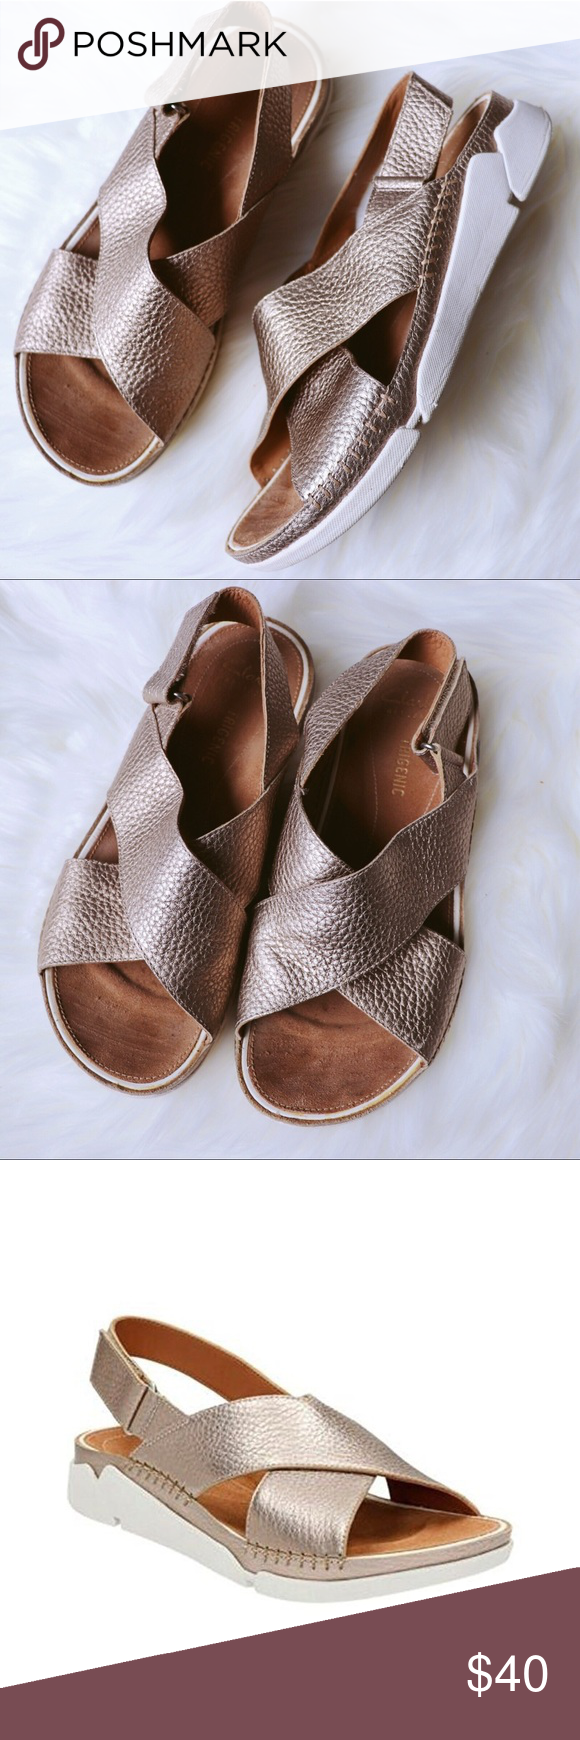 1c627bae4513 Clarks Artisan sandal- Tri Alexia Great used condition Clark s Artisan  leather cross strap sandal in